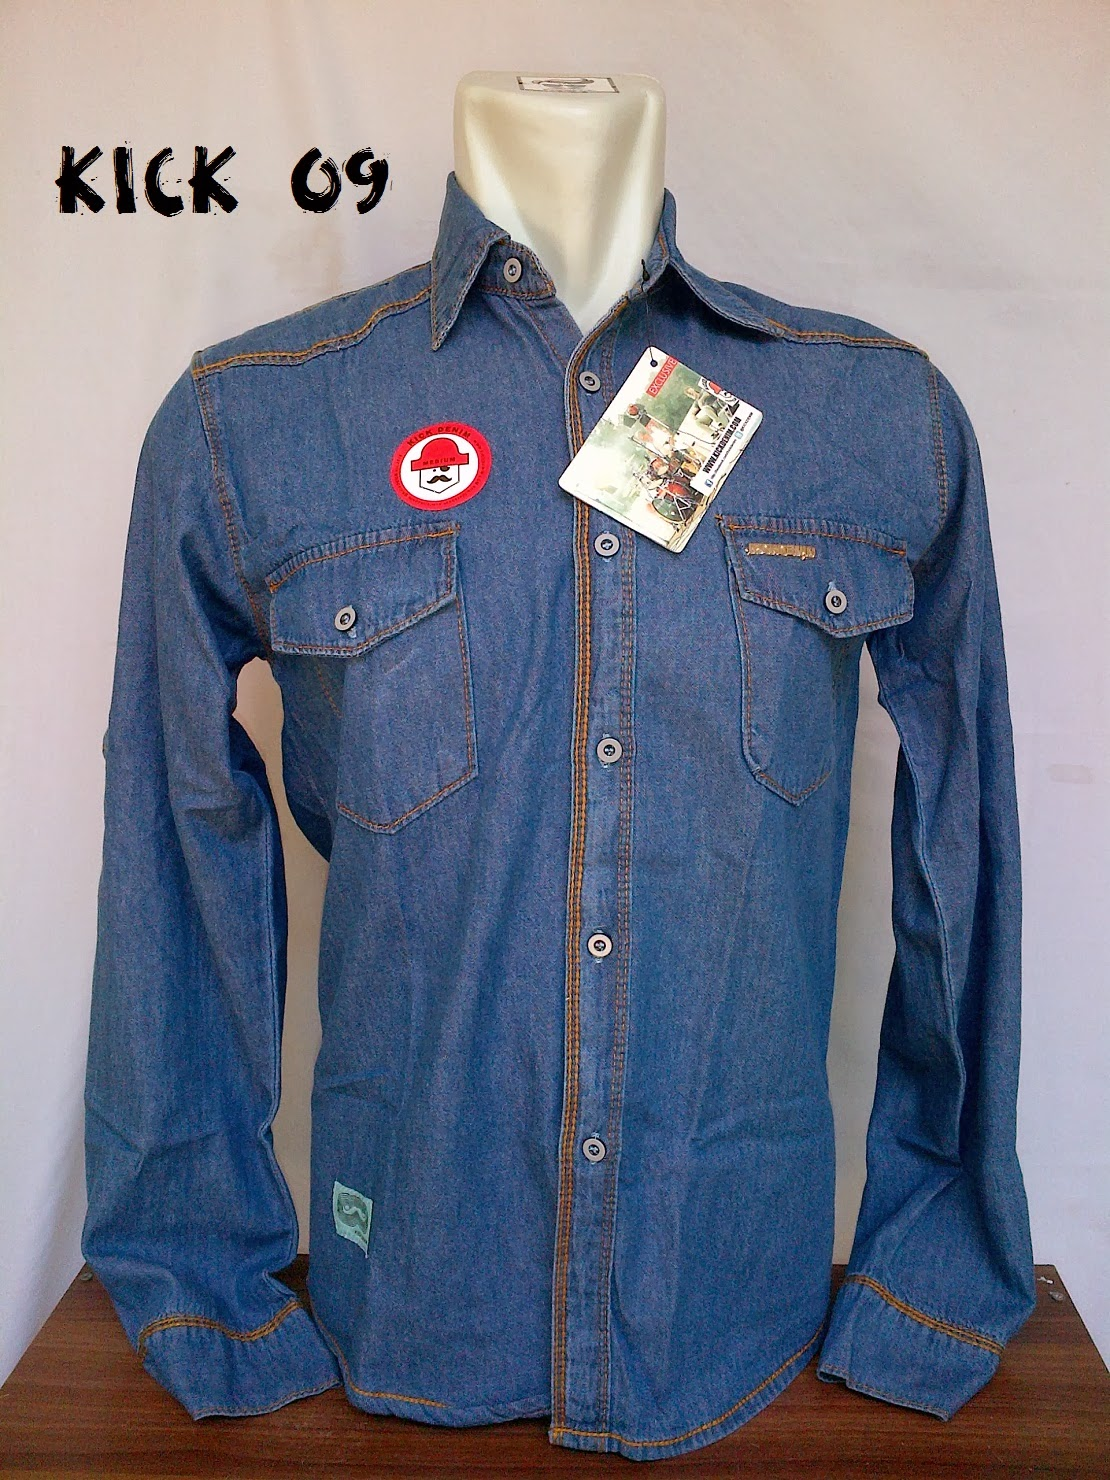 Jaket Levis Kick Denim